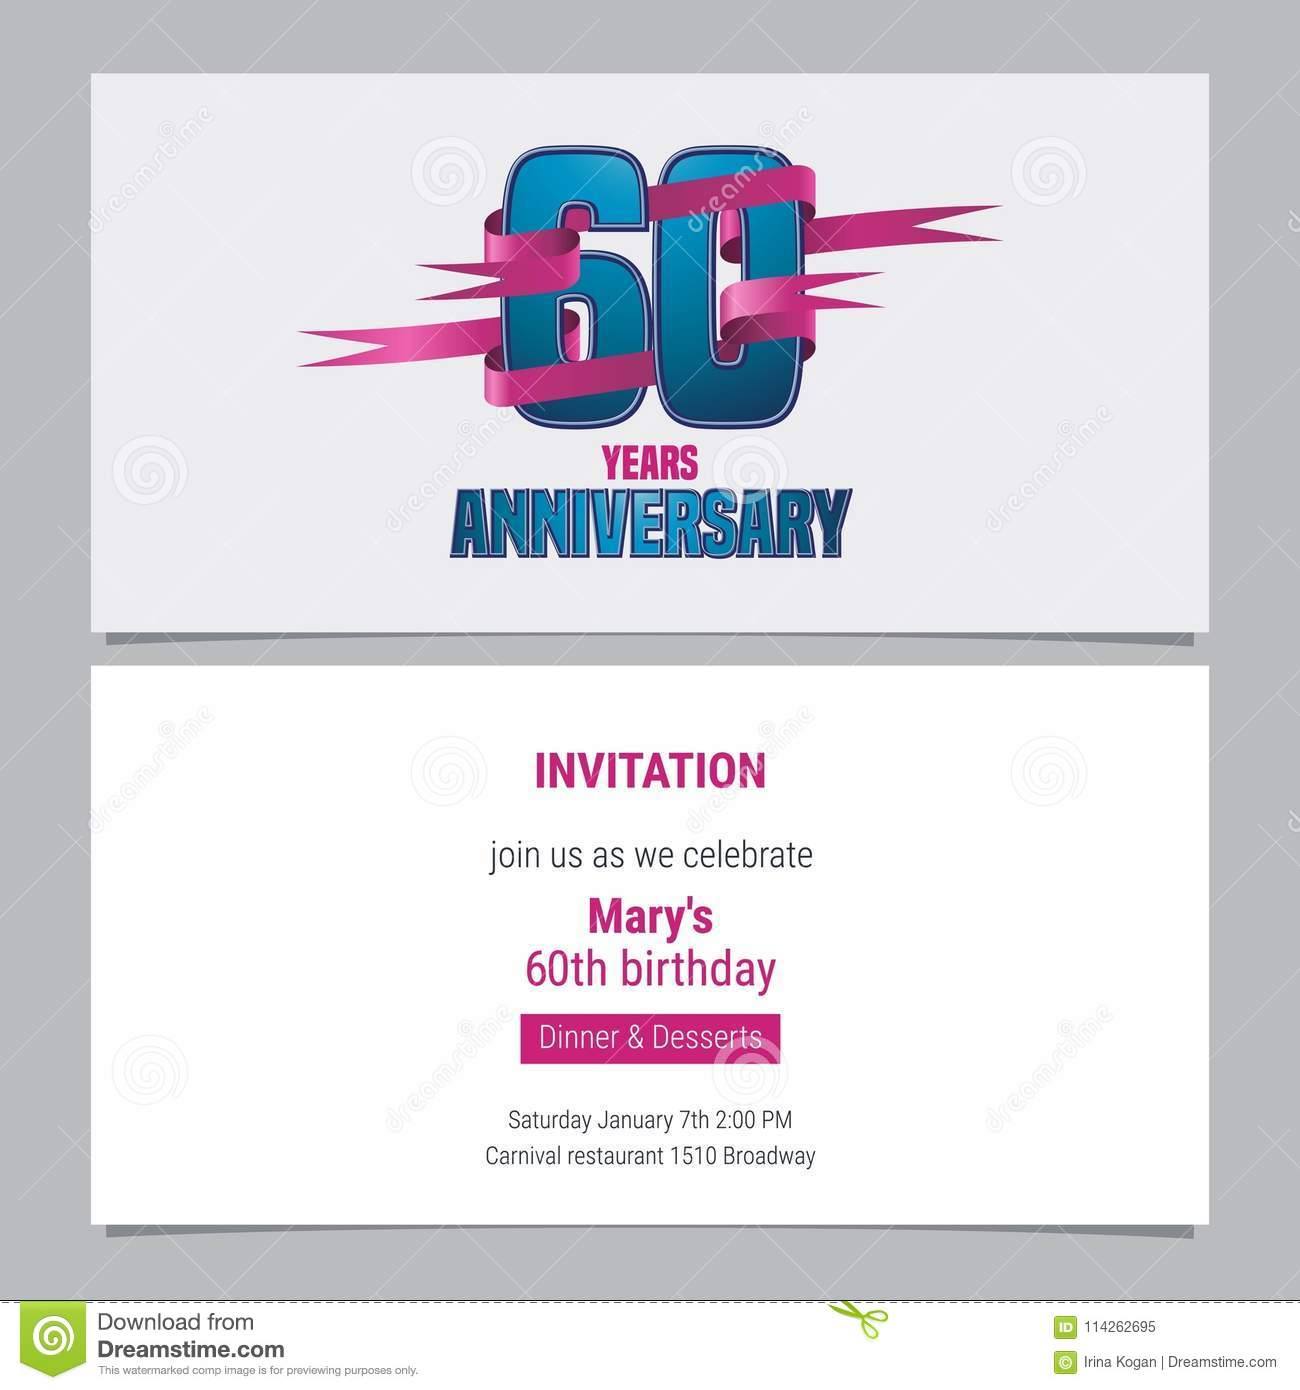 60 Years Anniversary Invitation To Celebration Vector Illustration ...